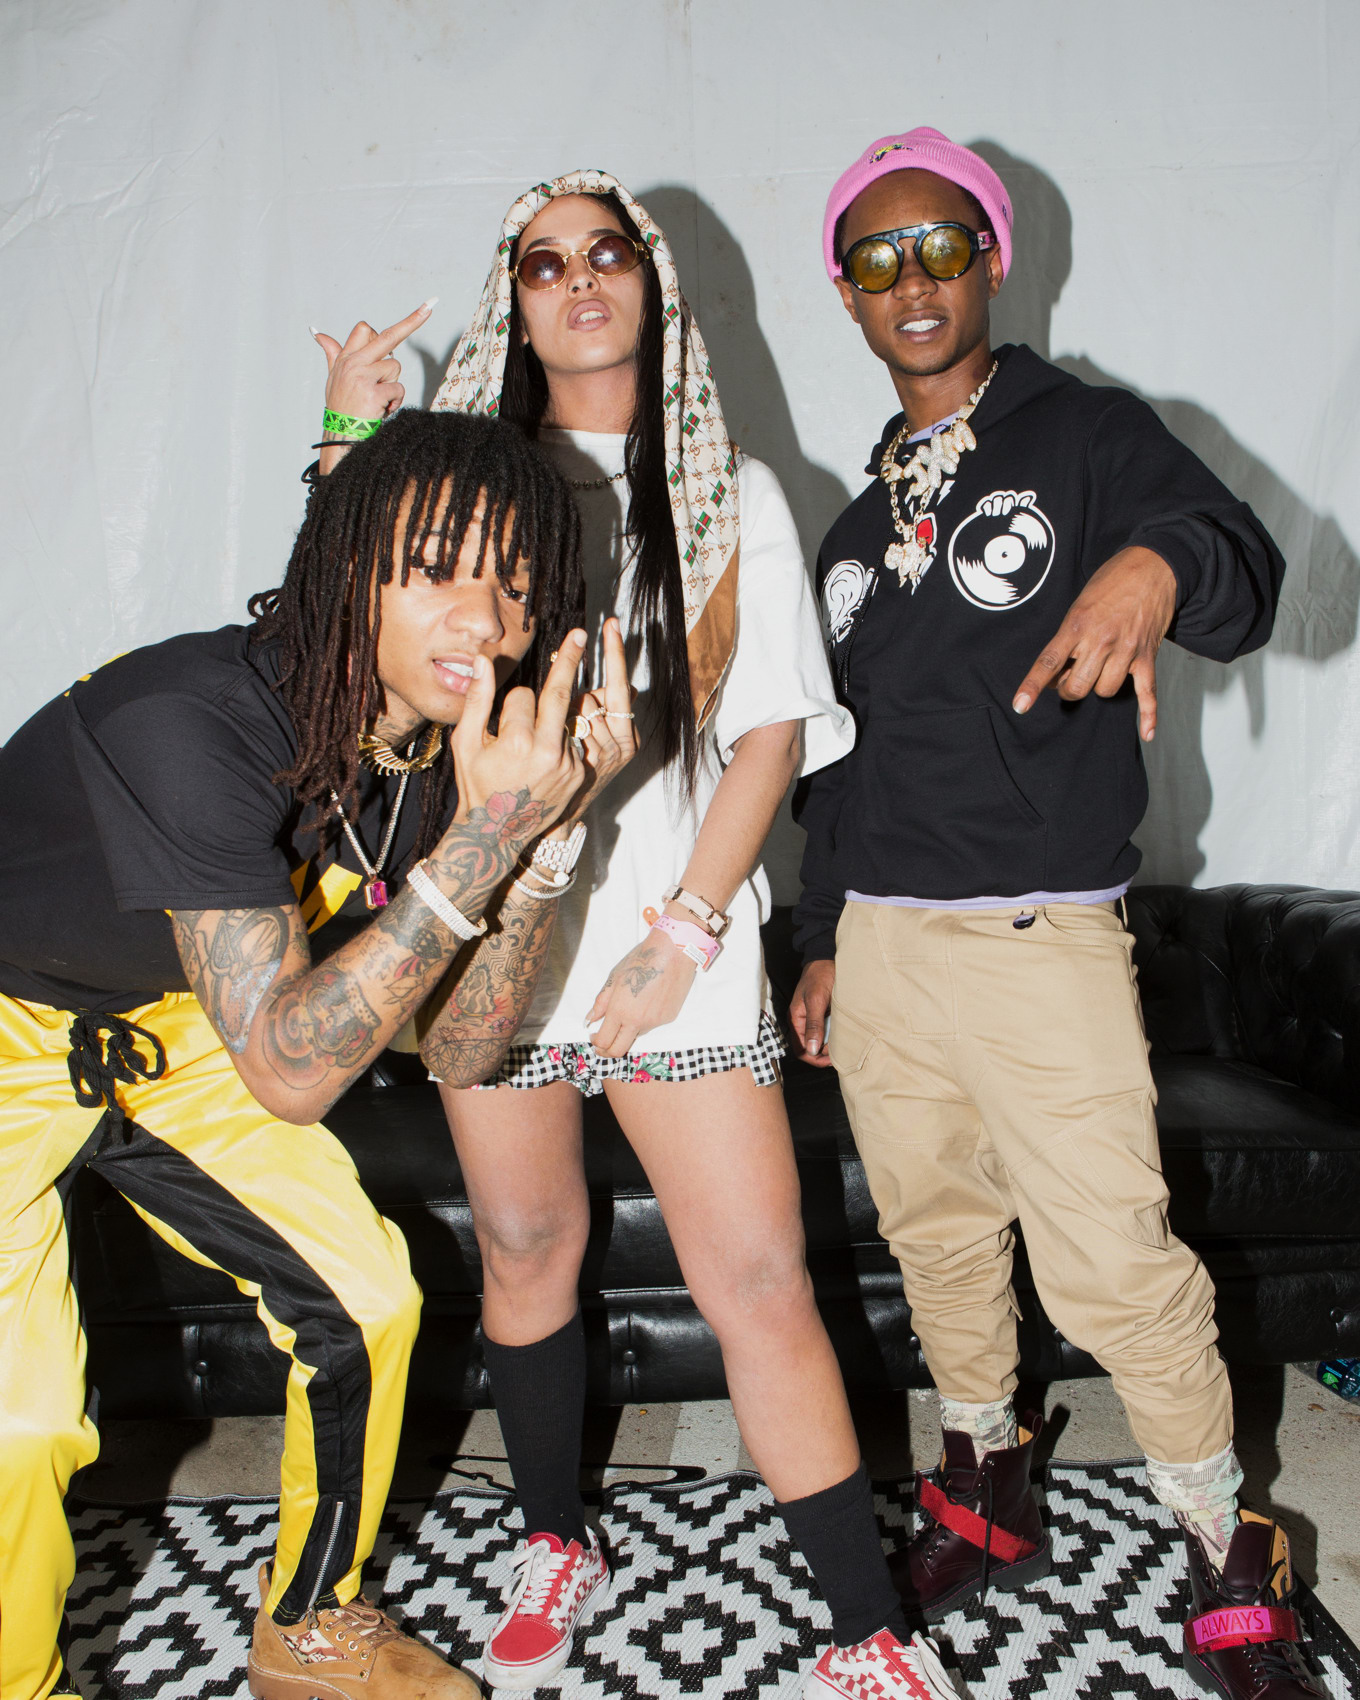 26 legendary photos from Day 3 of The FADER FORT